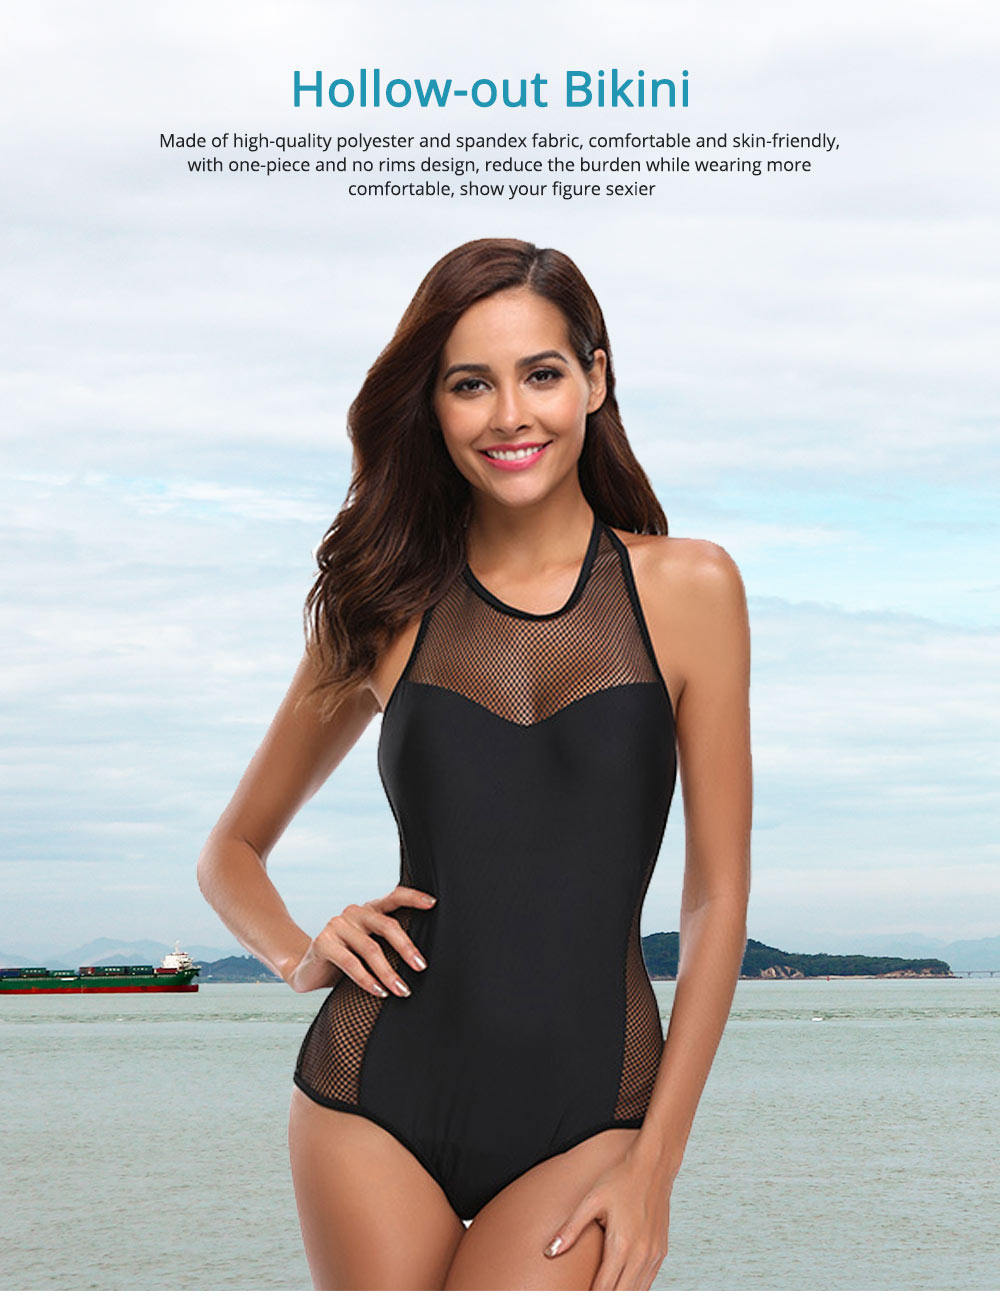 Hollow-out Bikini with Comfortable and Skin-friendly Polyester and Spandex Fabric for Ladies, No Rims One-piece Swimsuit 0